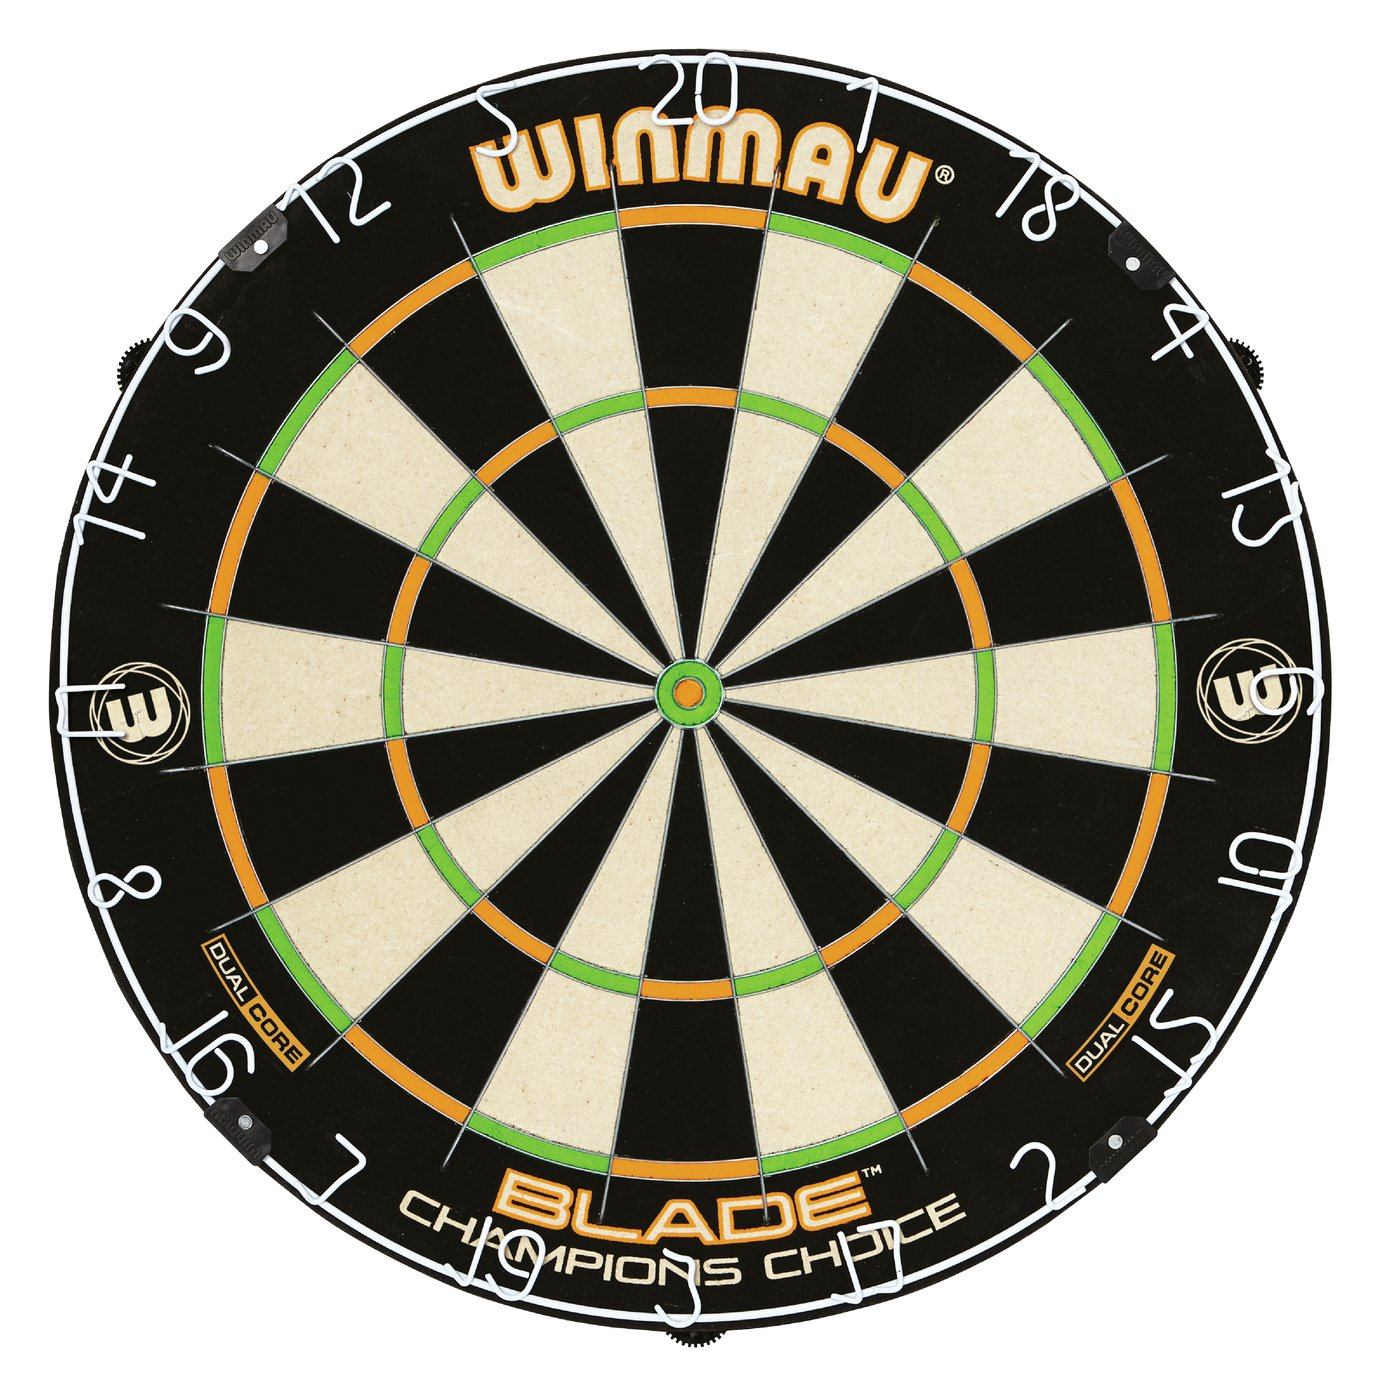 Winmau - Blade Champion's Choice Dual Core Bristle Dartboard lowest price